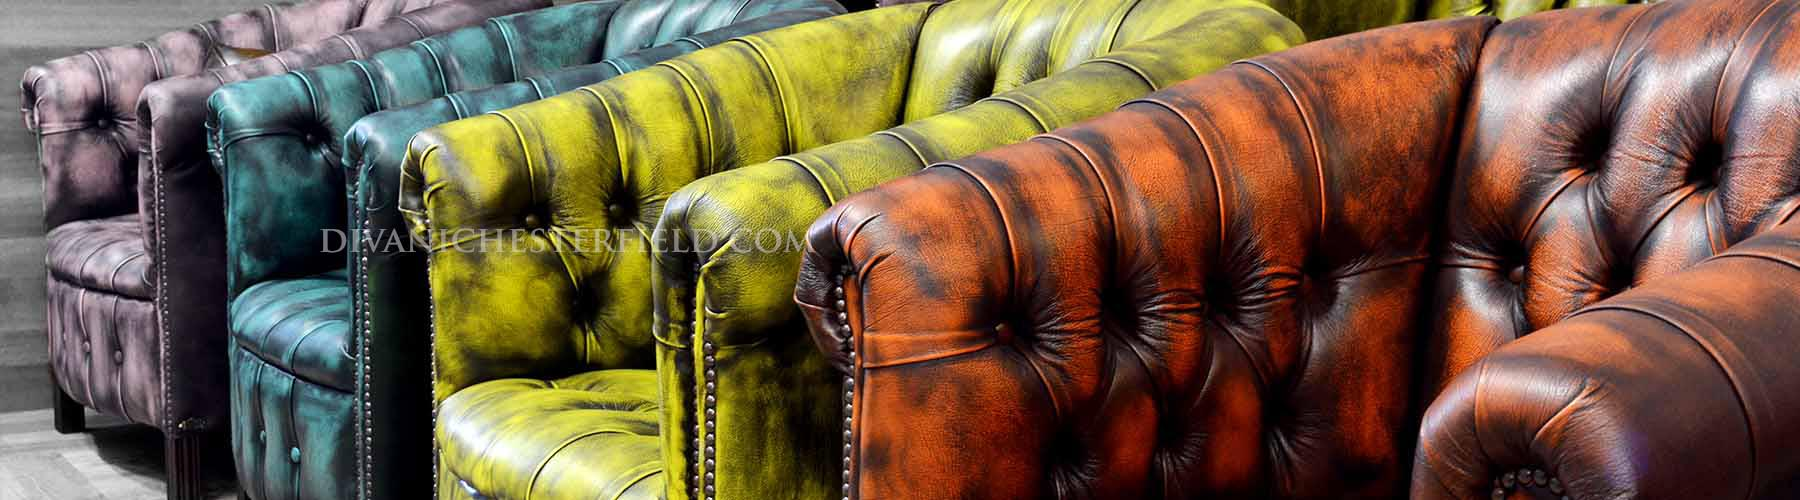 poltrone-chesterfield-vintage-originali-colorate